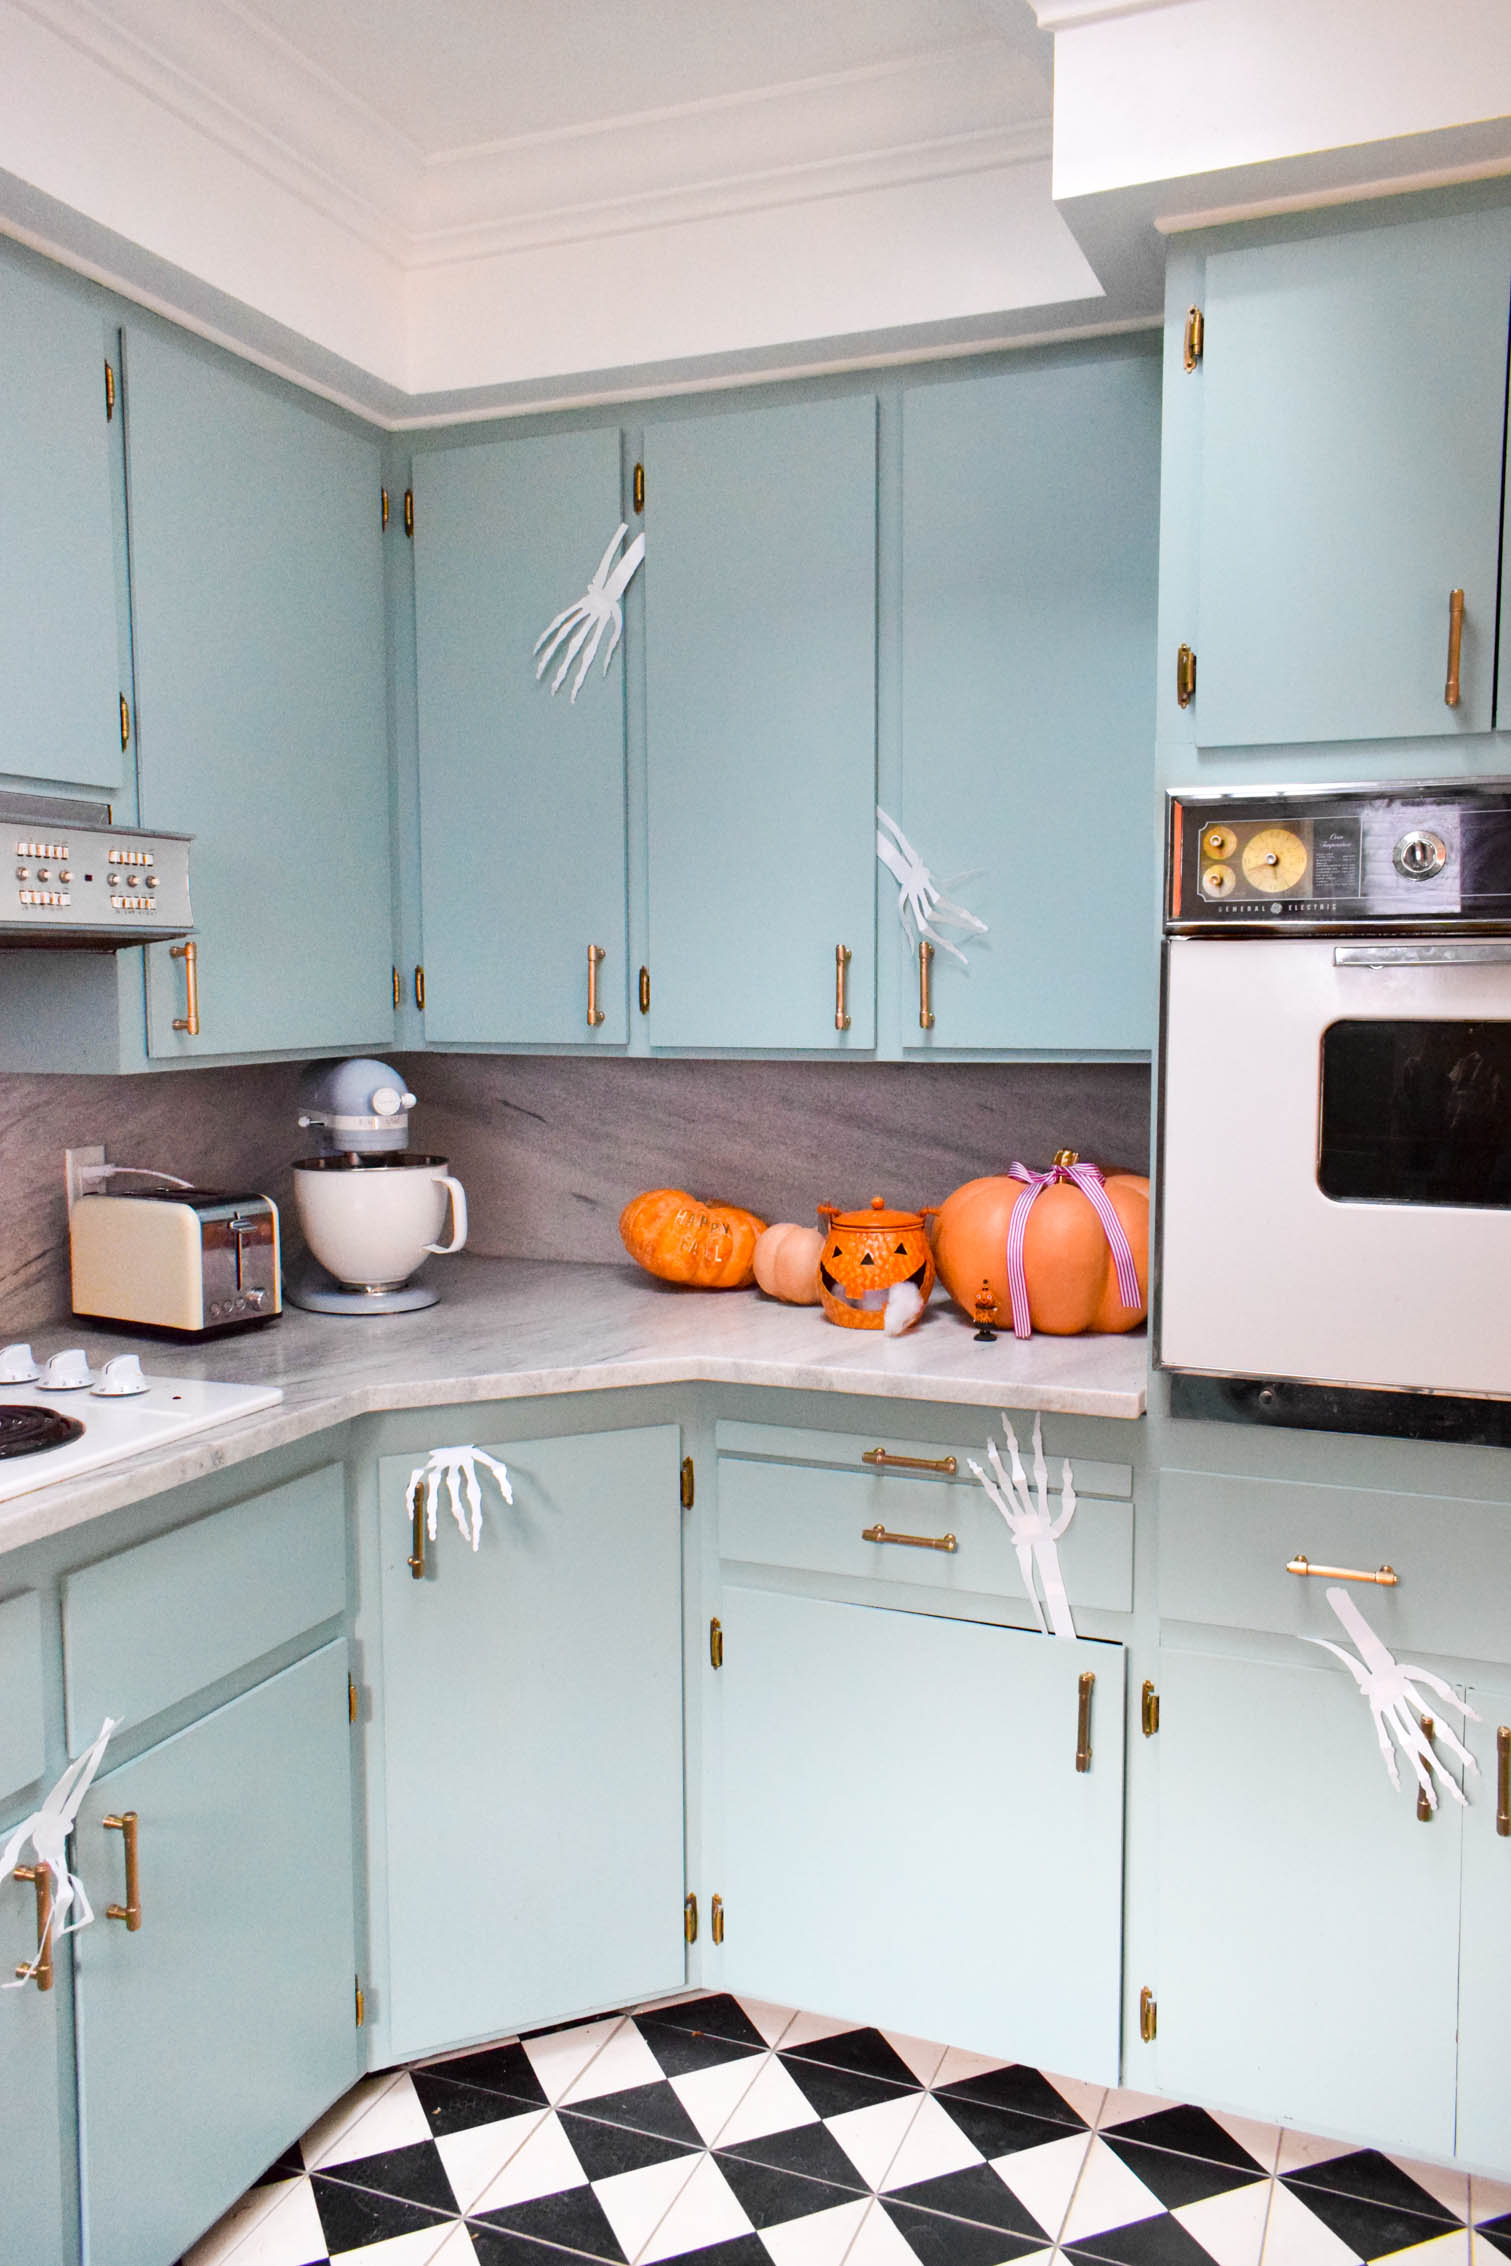 Spooky Kitchen Halloween Decorations are as easy as ghosts, ghouls, witches and skeletons! Boo! Come see how you can add a playful touch to your decor.